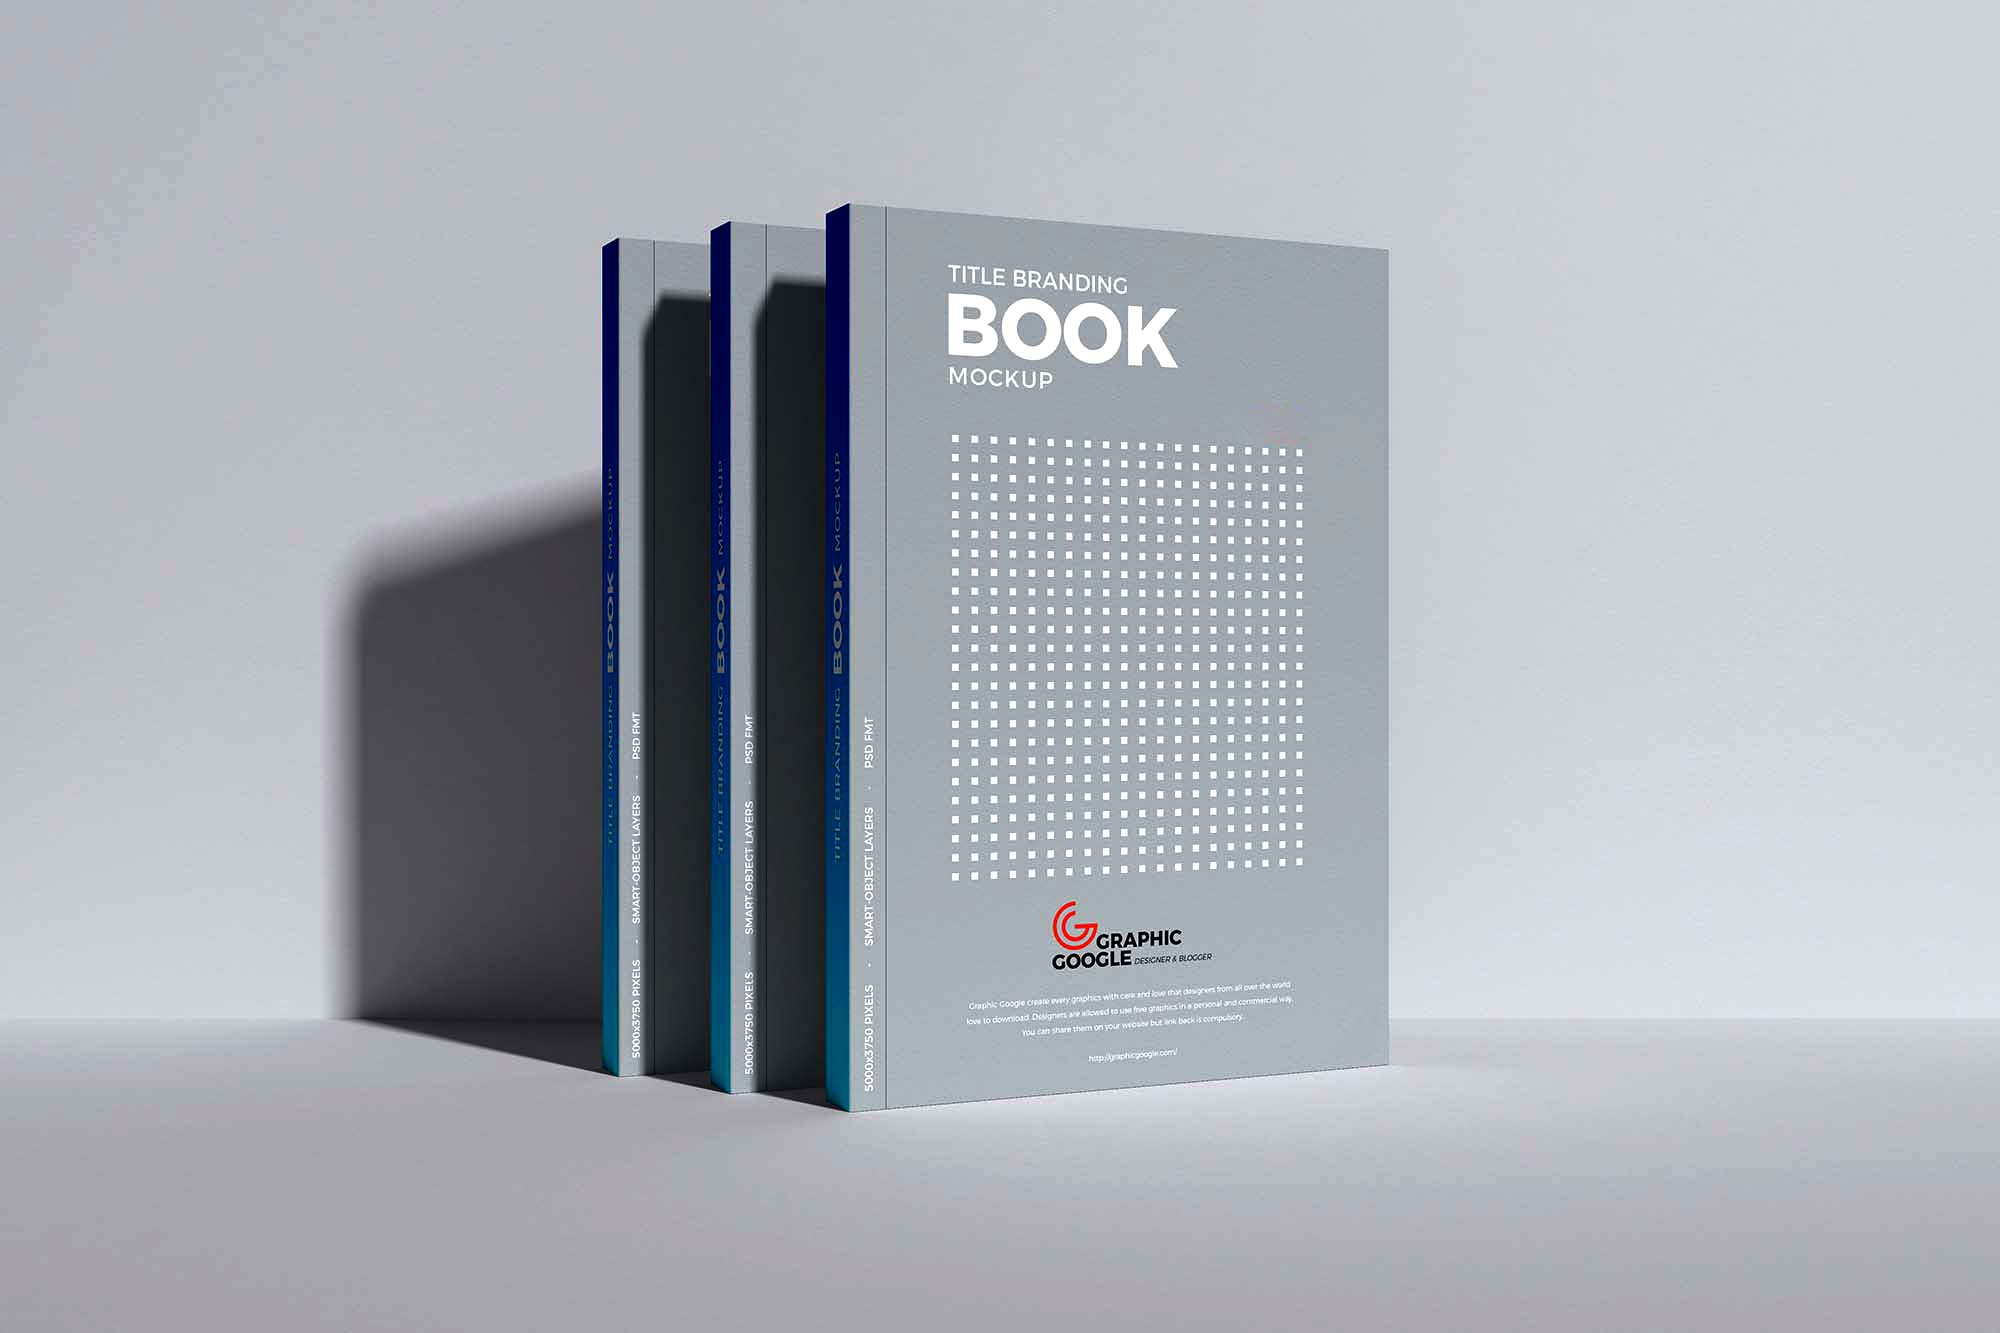 Upright Standing Books Mockup